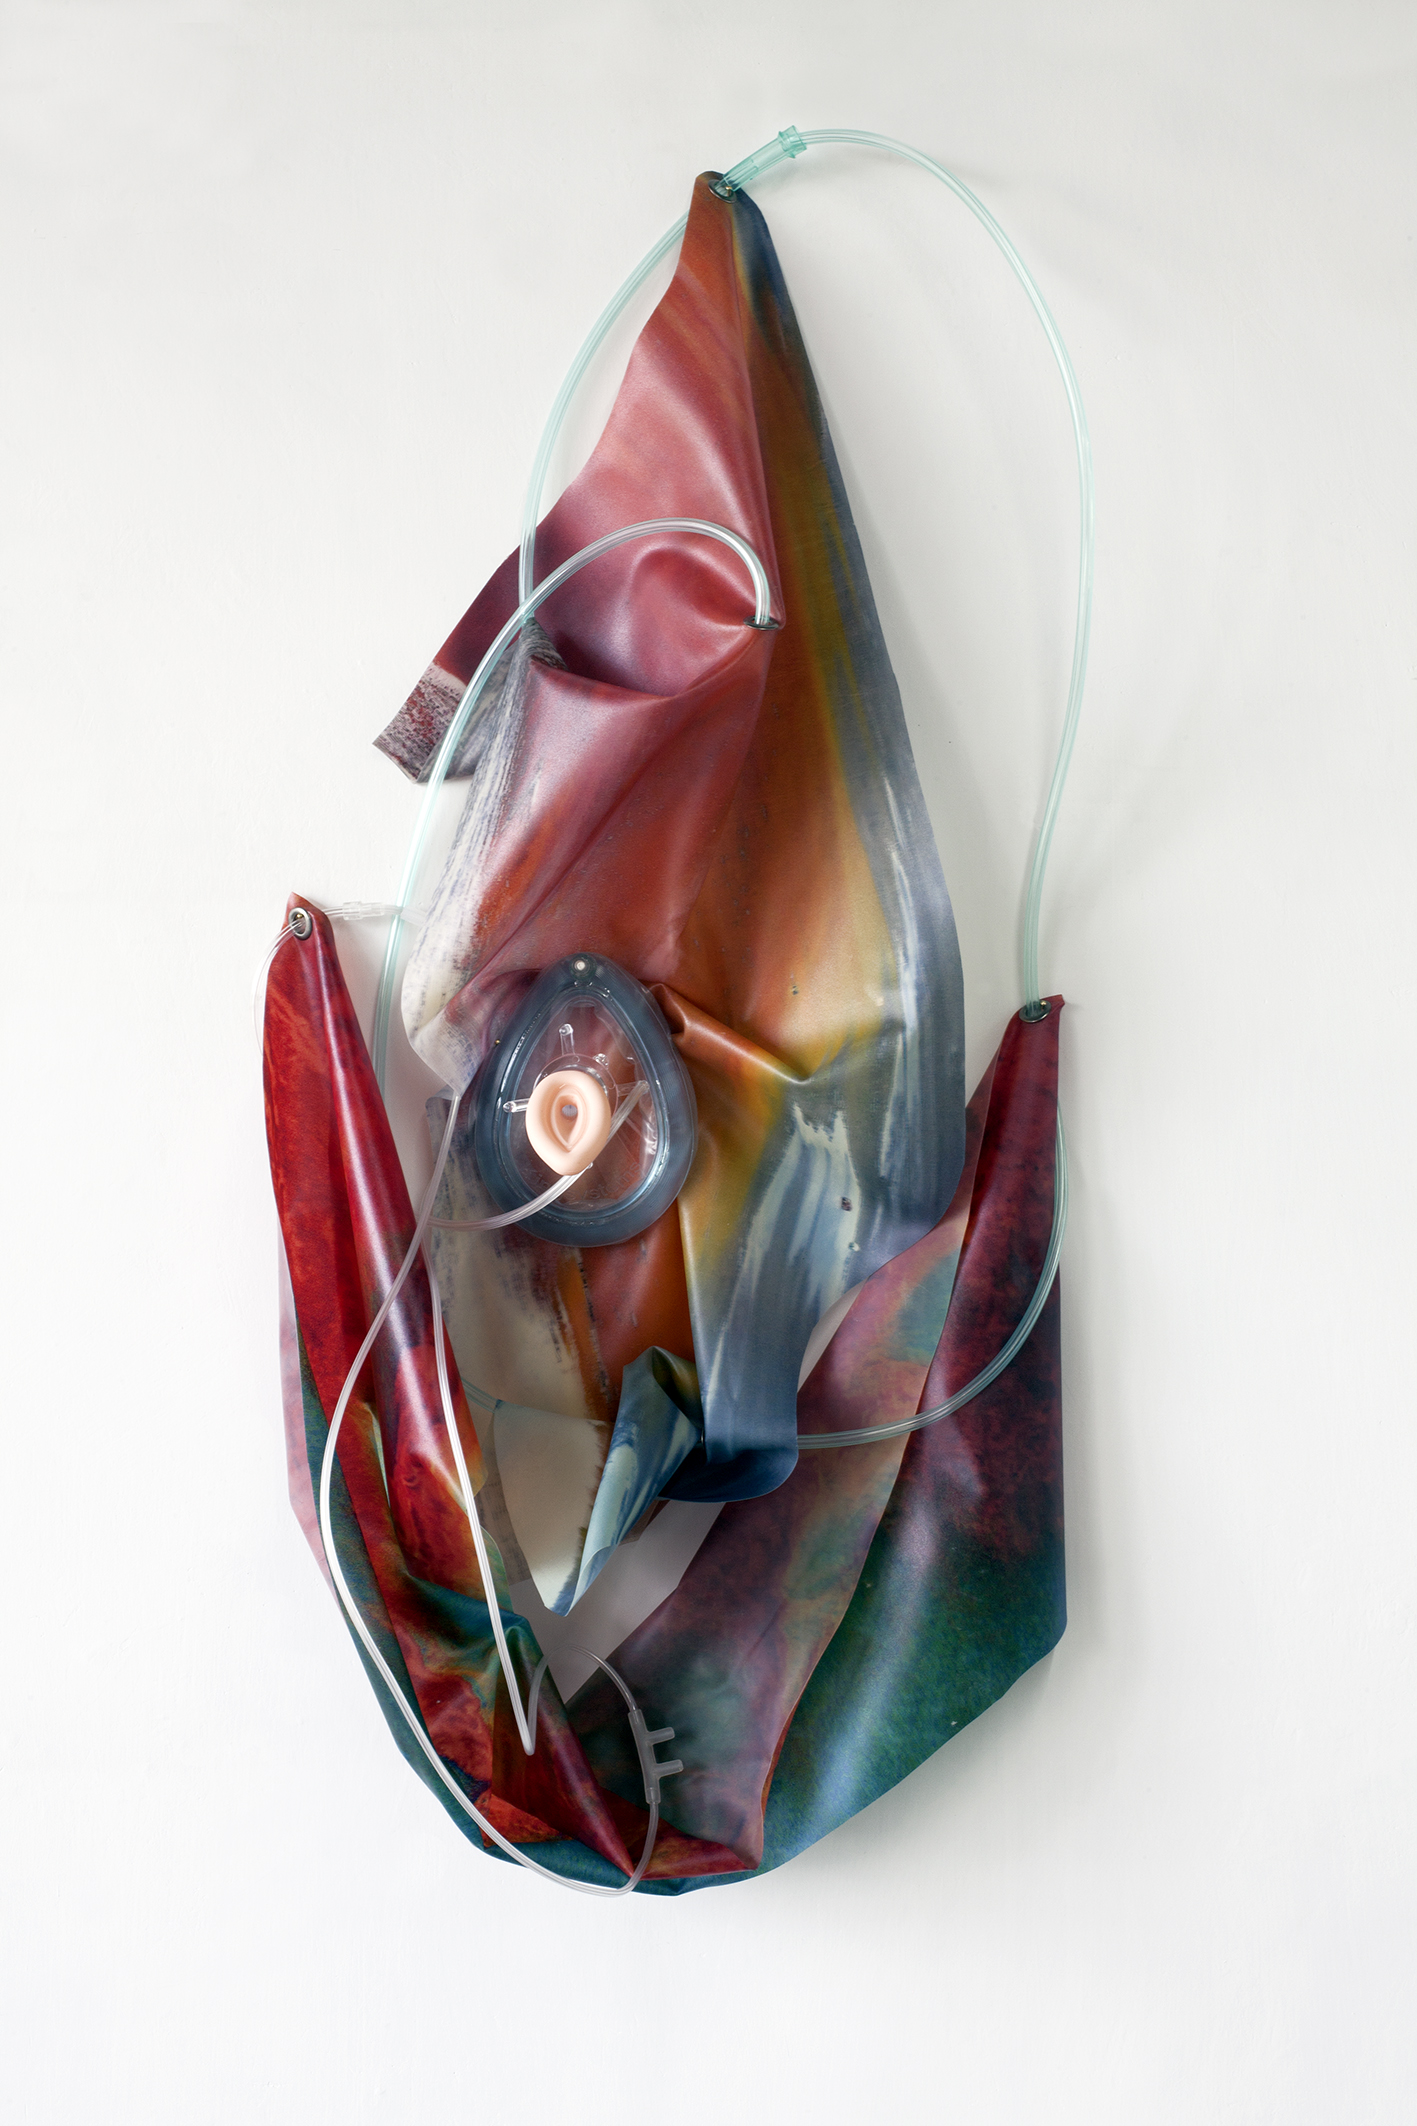 Petrified Sensibilities 16 , 2017. Sculpture; Inkjet prints on latex, anaesthesia mask, laryngeal mask airway, oxygen tubing. 73 x 40 x 11,5 cm. Unique